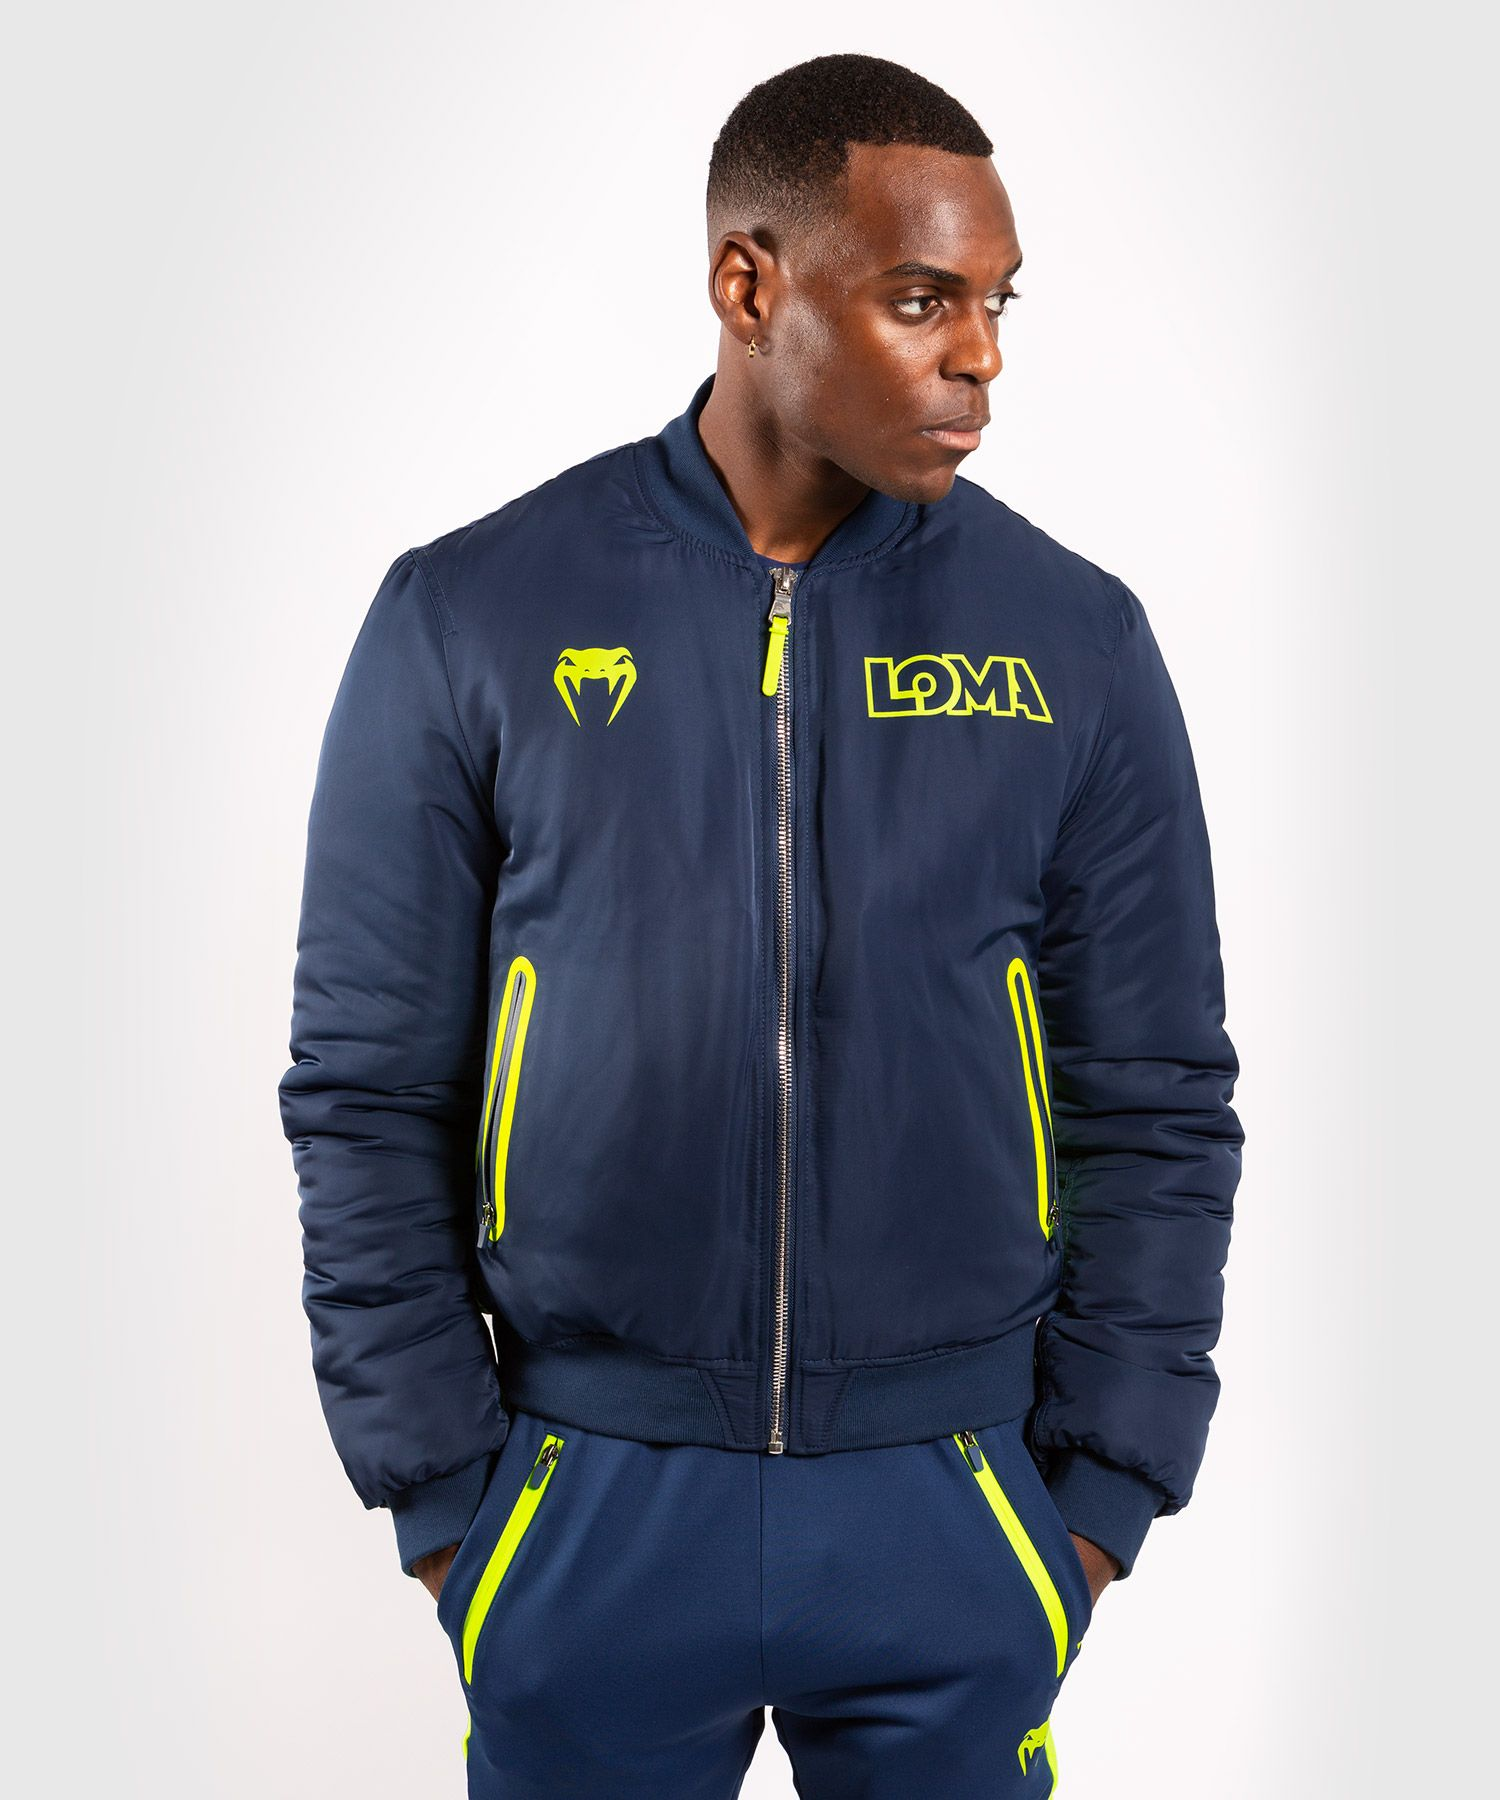 Venum Origins Bomber Loma Edition - Blue/Yellow